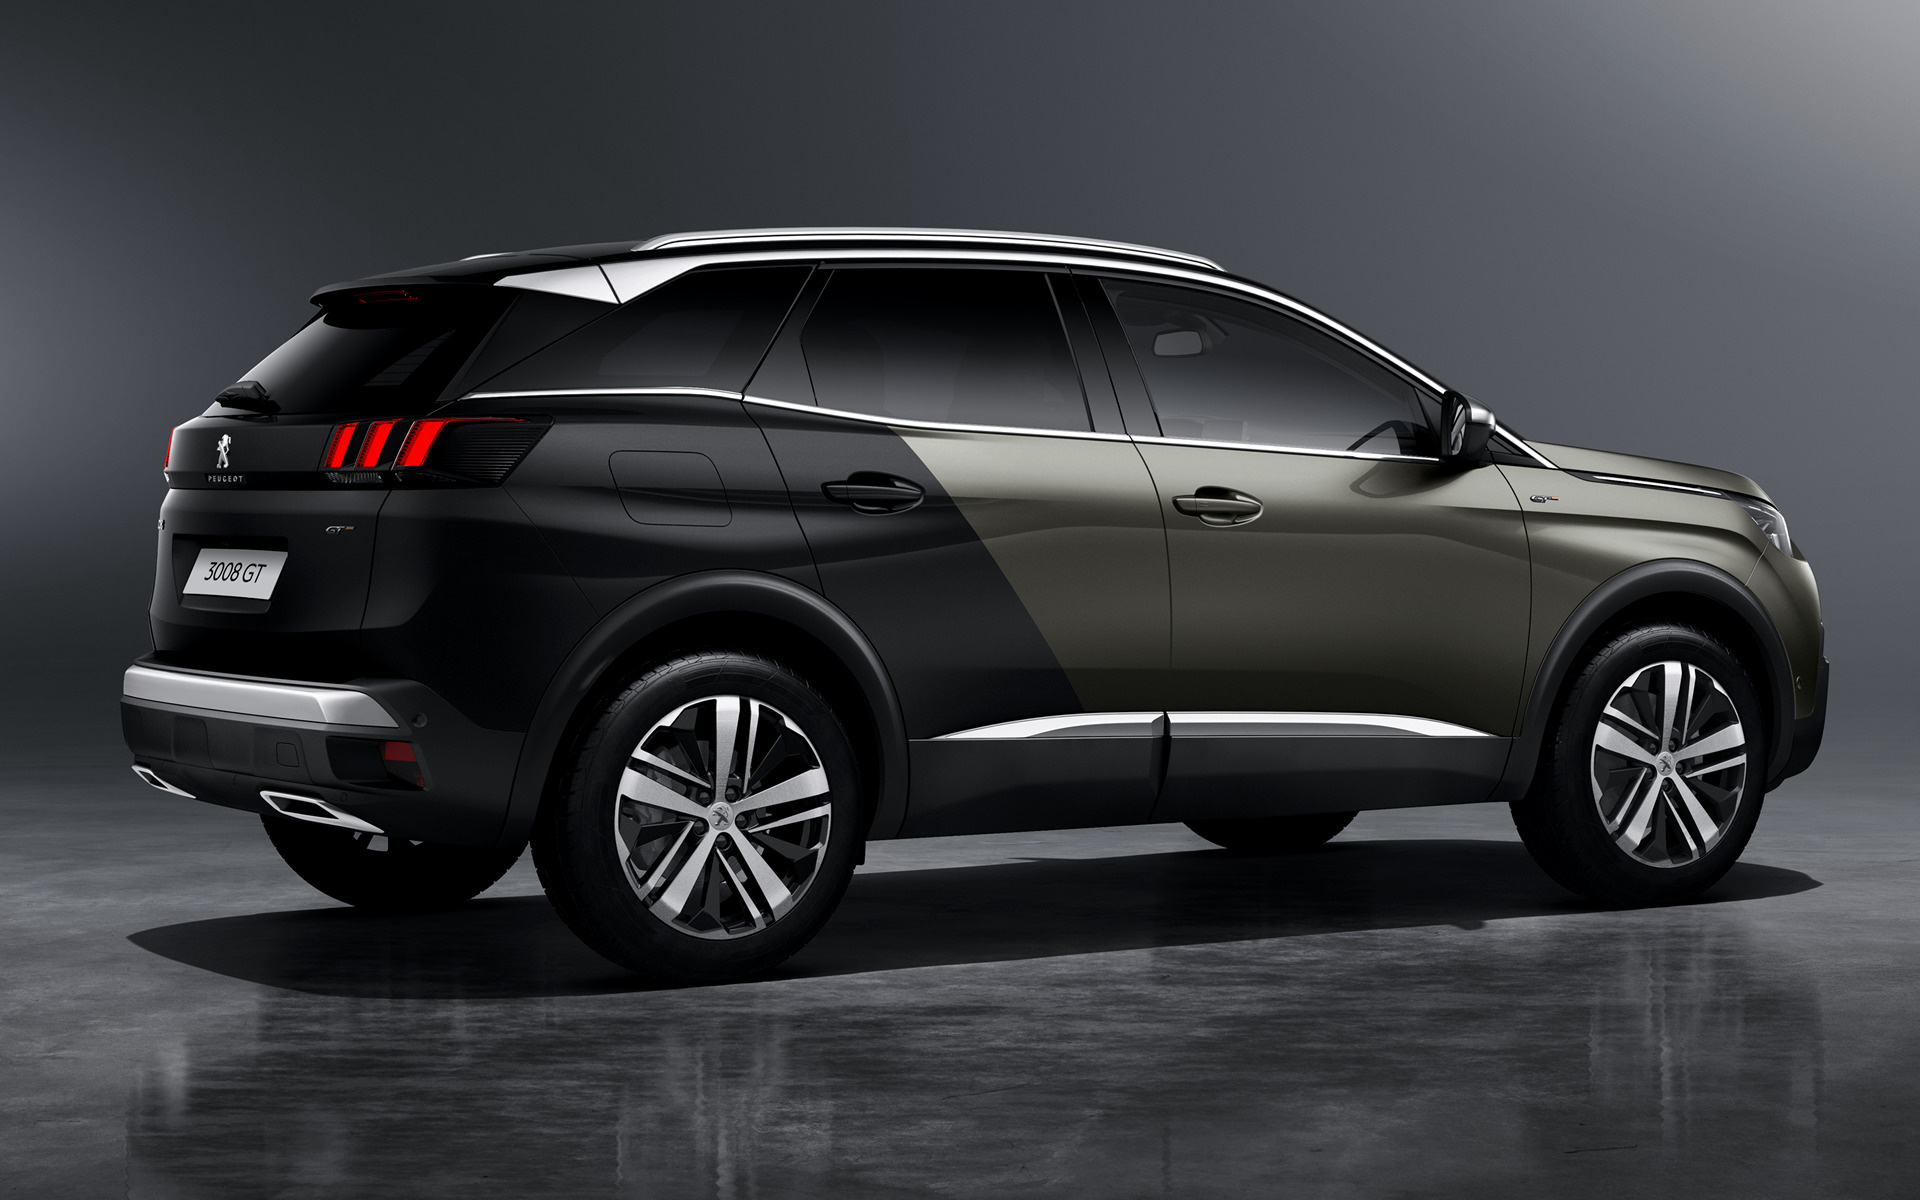 Peugeot 3008 GT (2016) Wallpapers and HD Images - Car Pixel